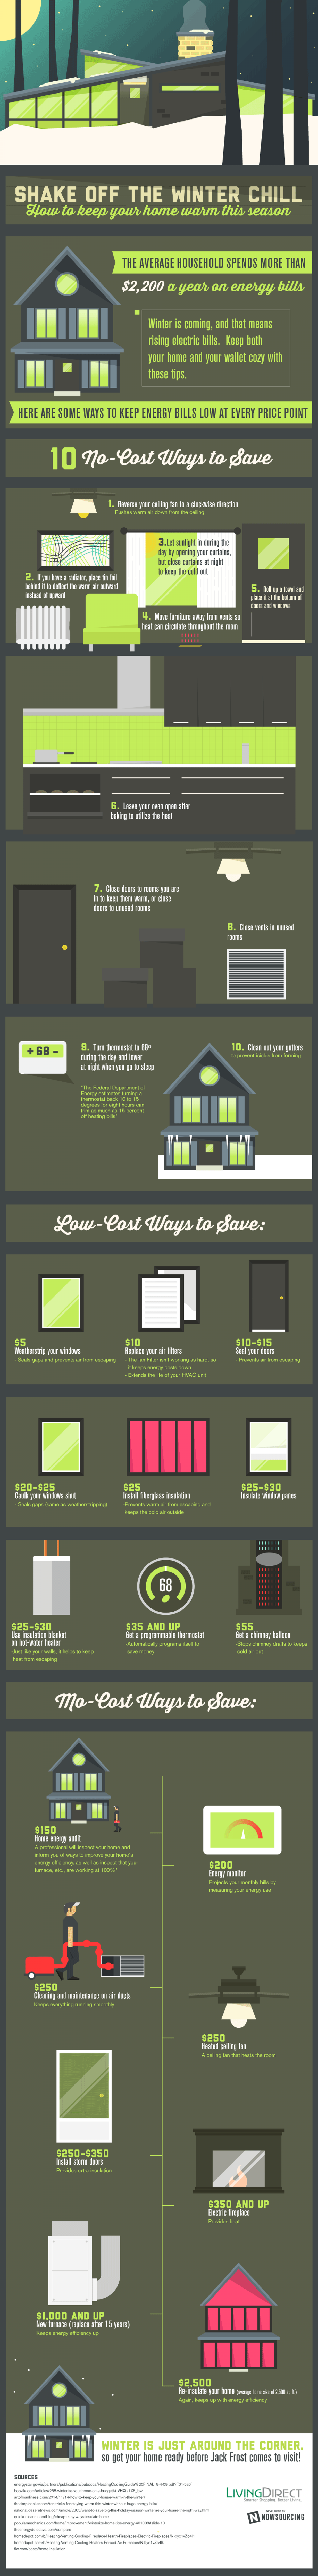 How To Winterize Your Home Inexpensively Infographic